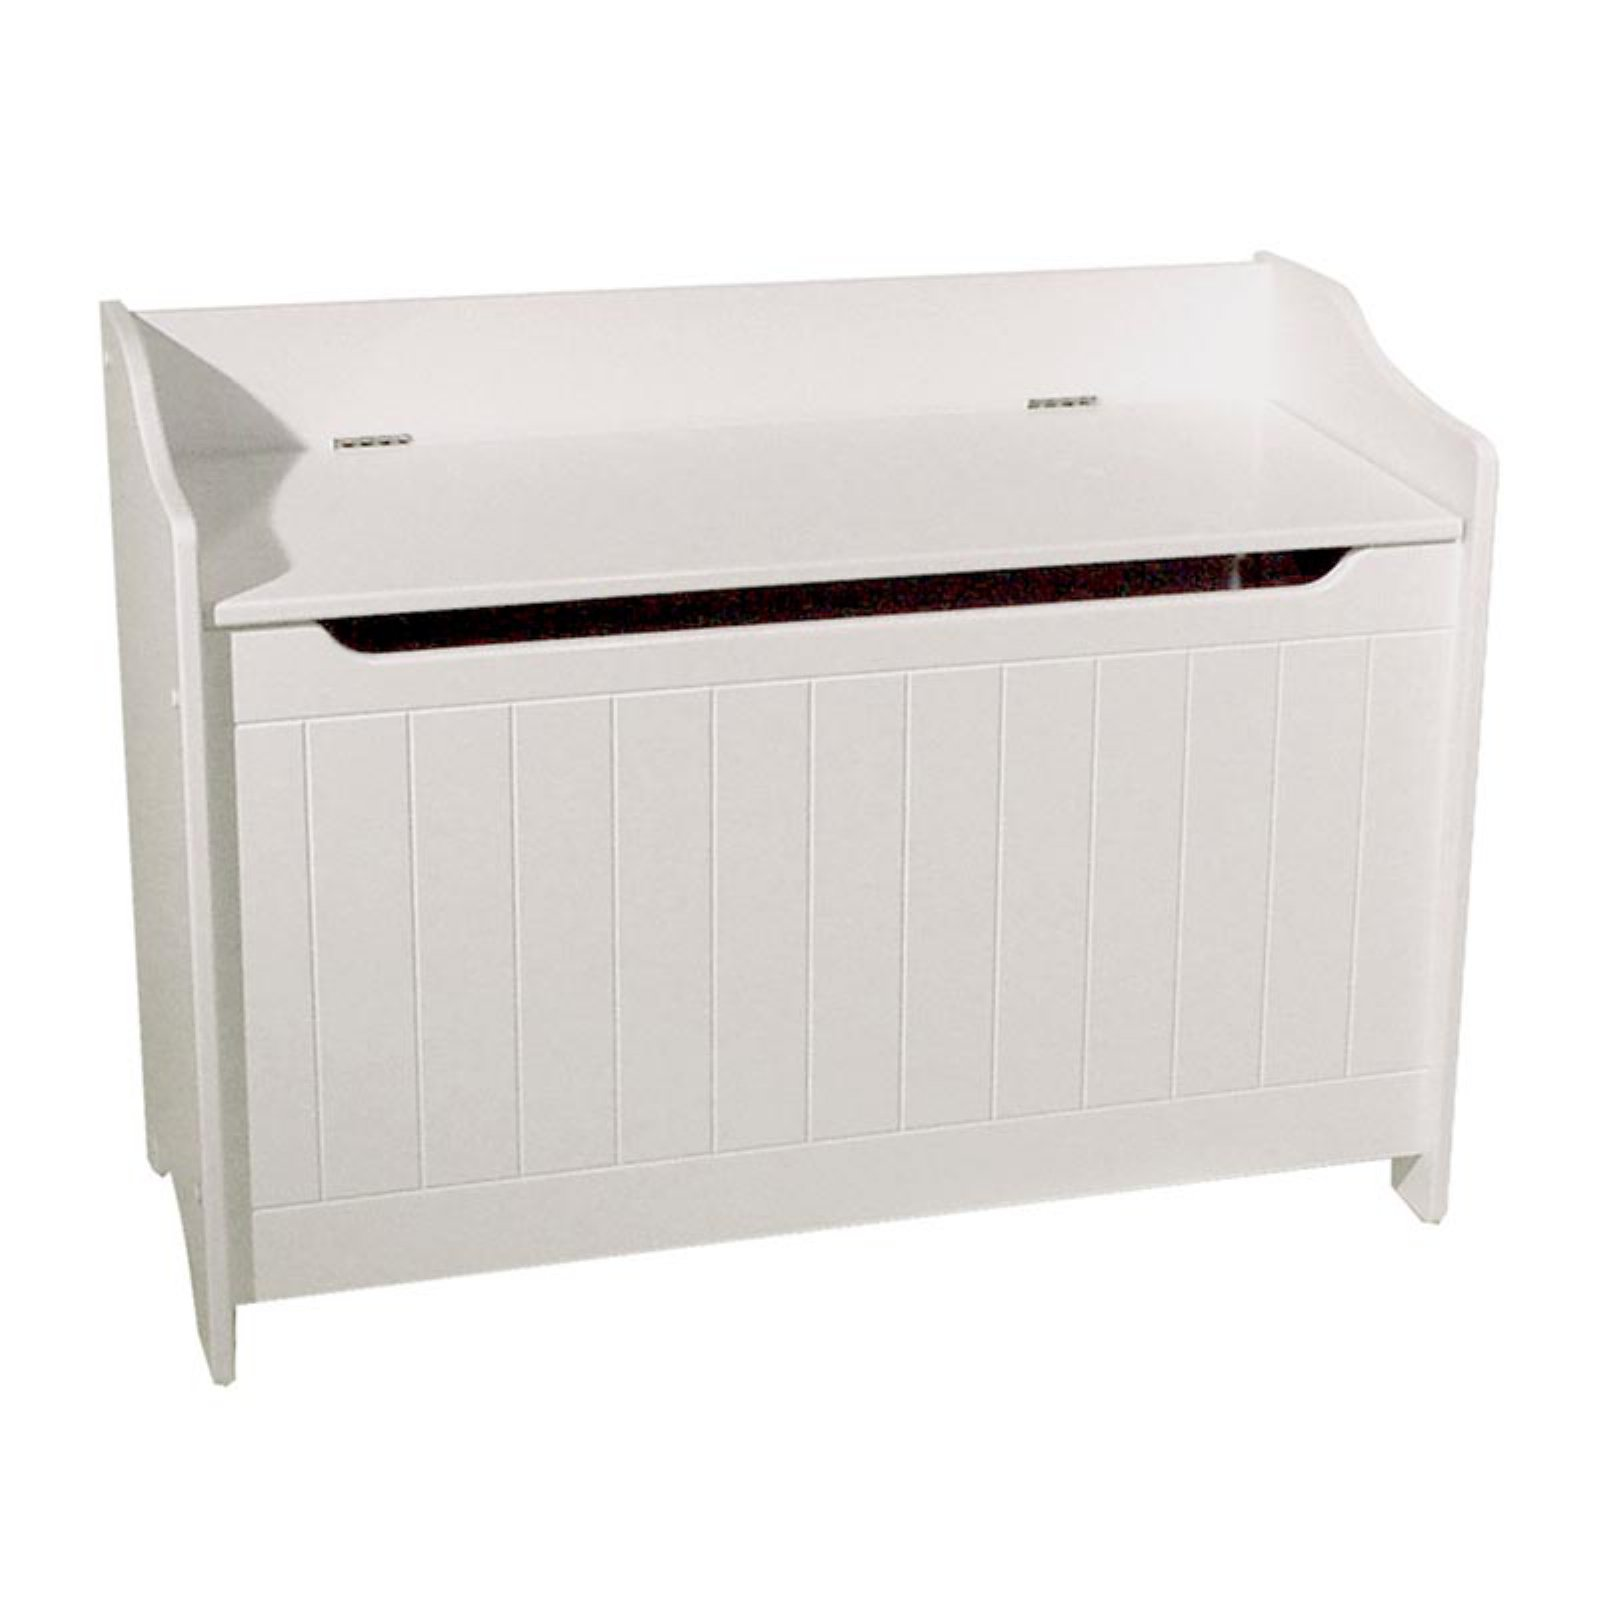 Catskill Delaney Storage Bench by Catskill Craftsmen